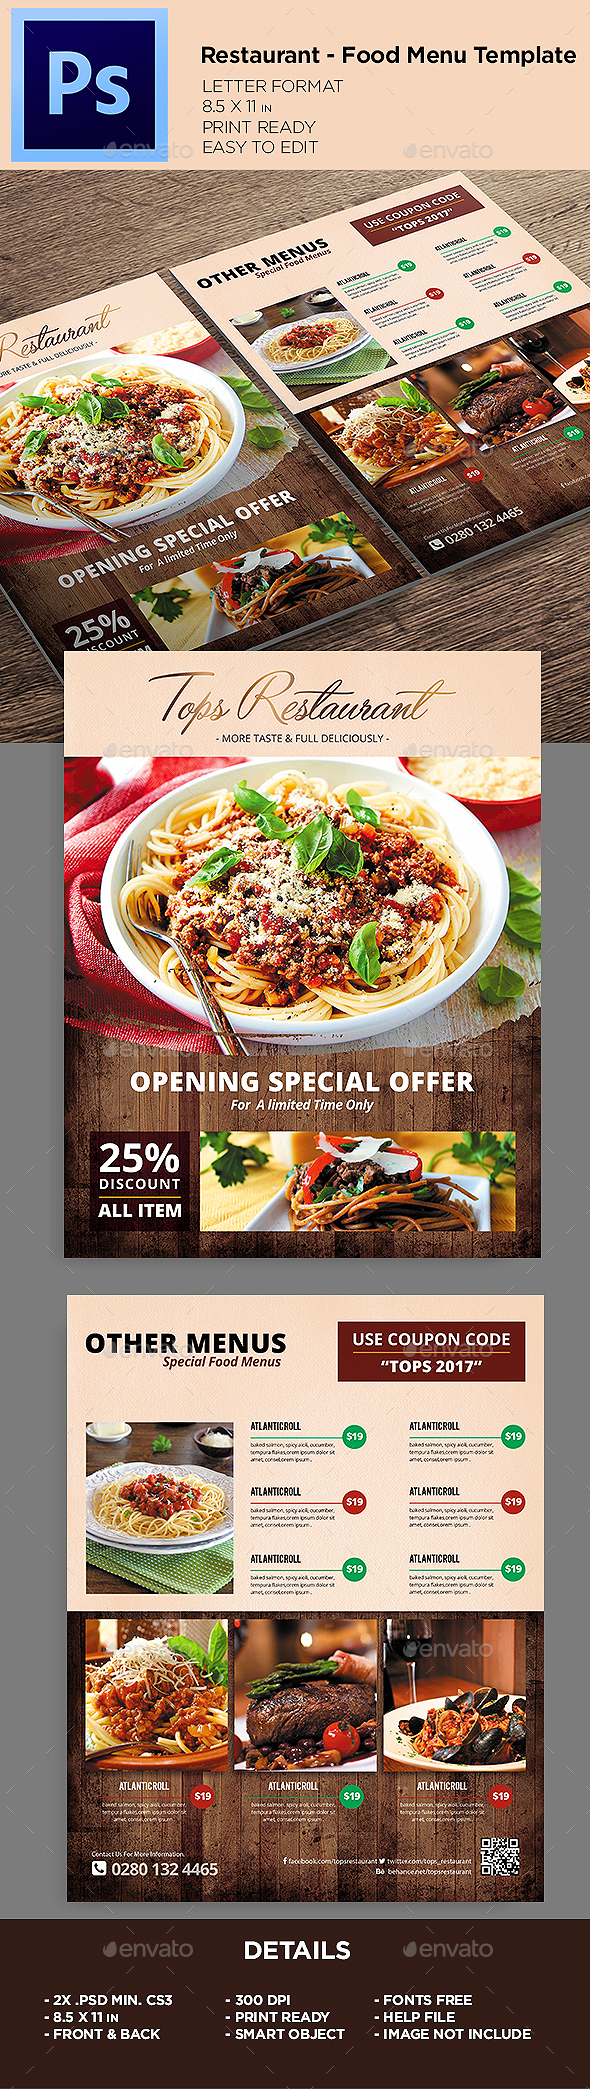 Restaurant Menu- Food Menu Flyer Template